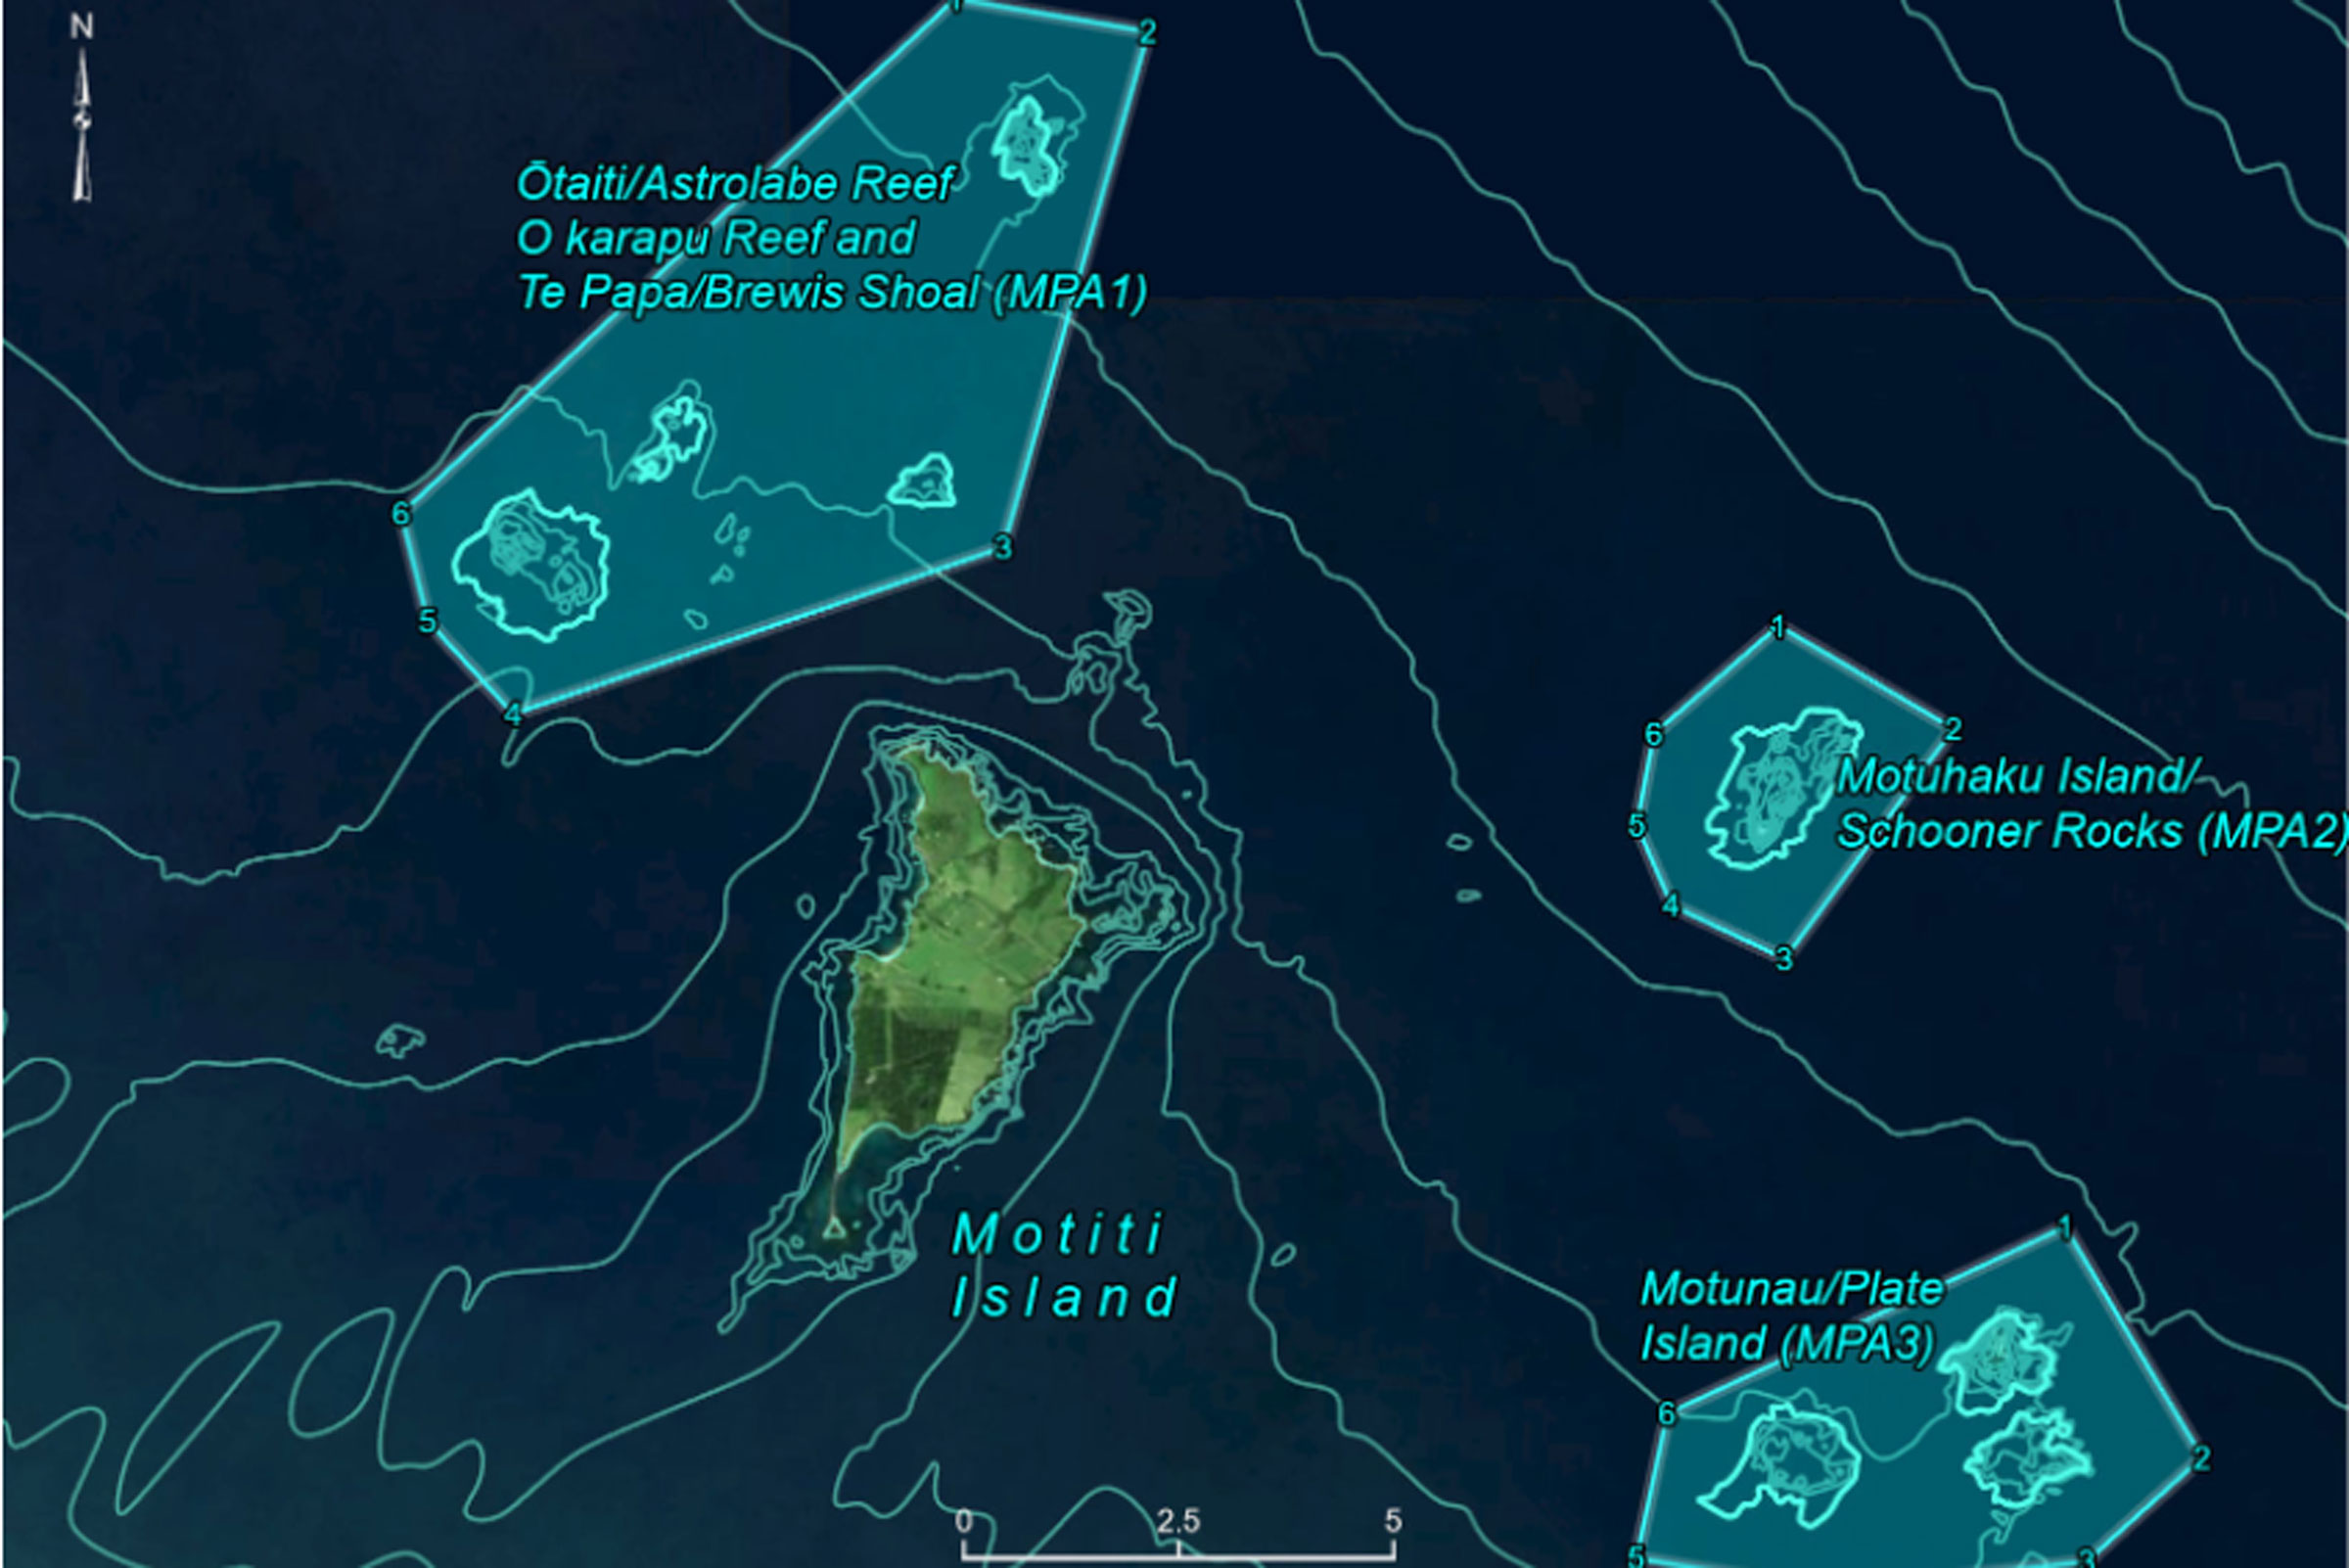 Motiti Protected Fishing Areas from 11 August 2021